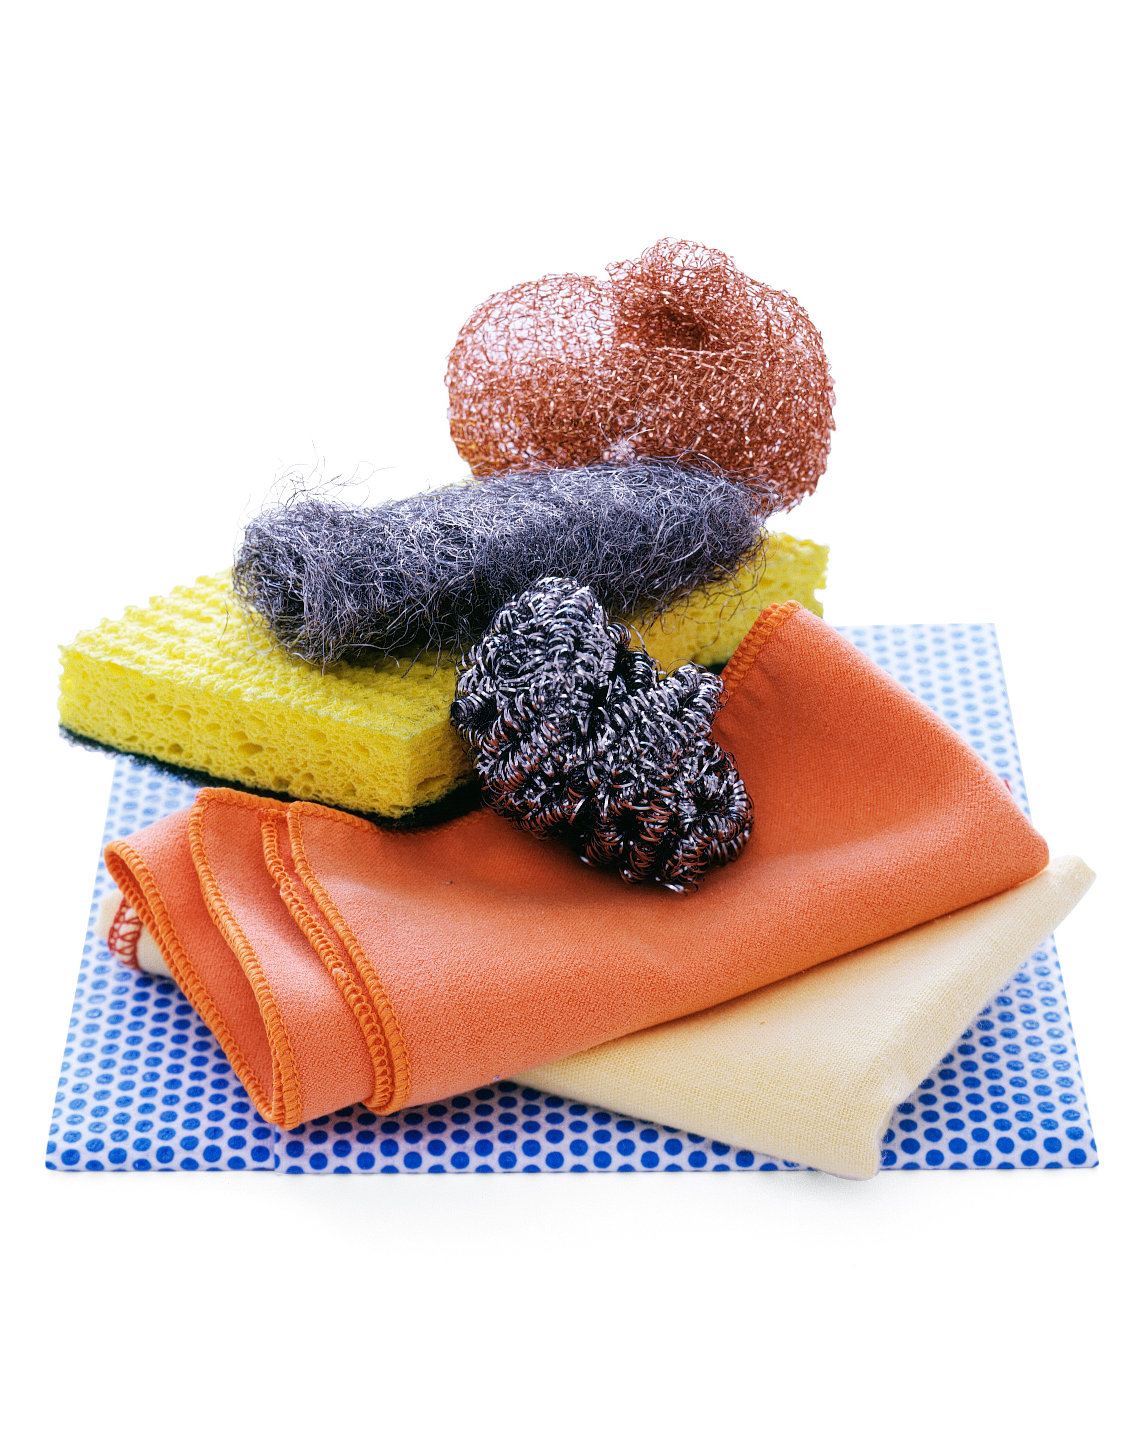 What's the best way to disinfect a sponge?